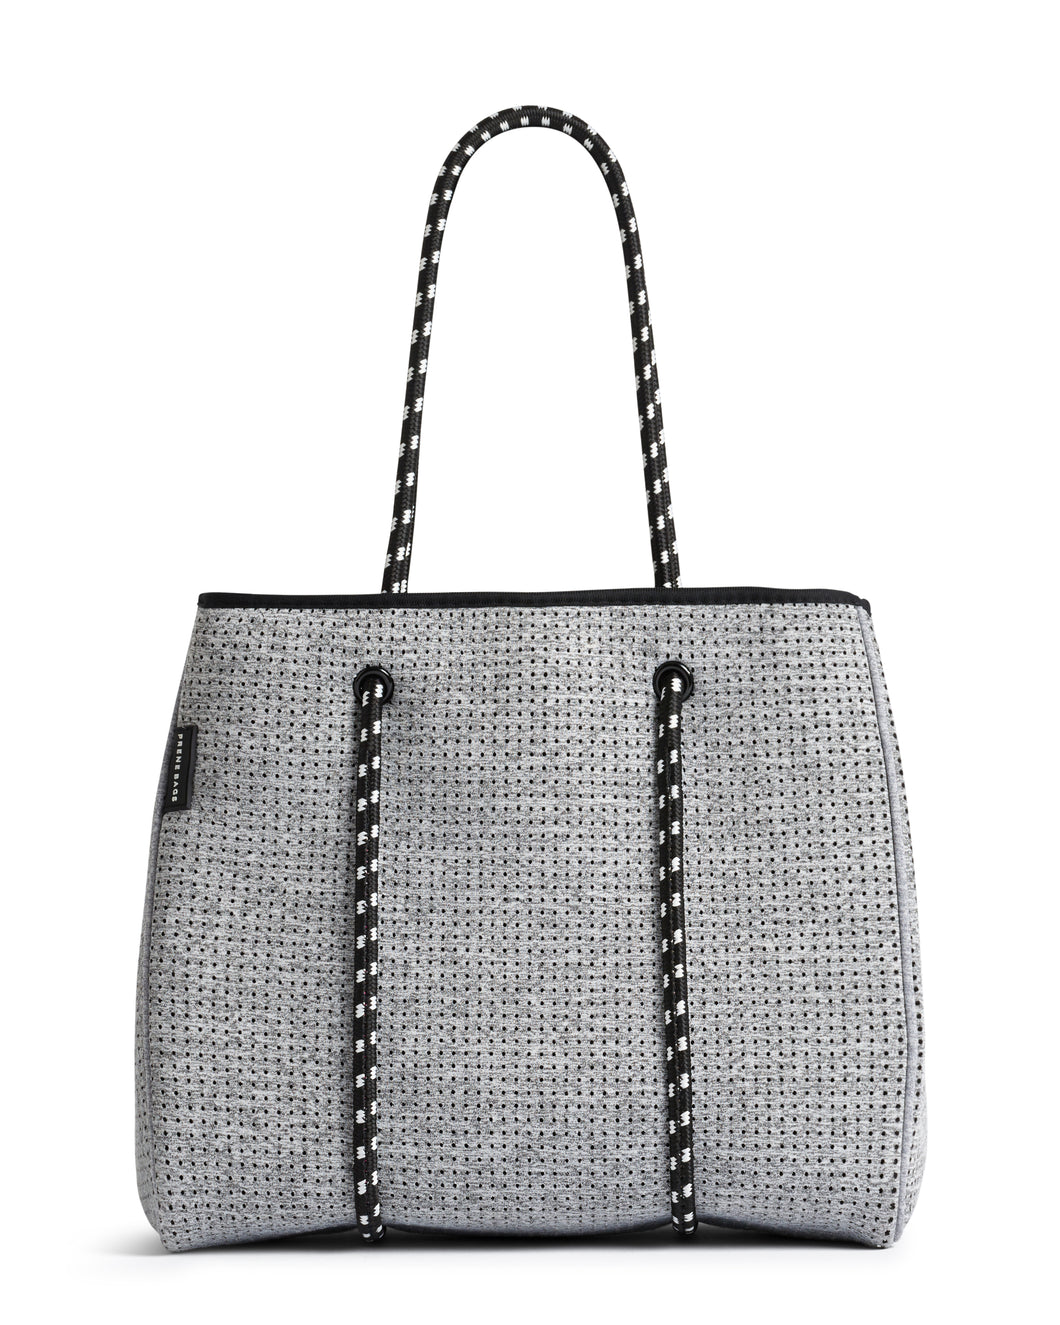 The Portsea bag - light grey/marble